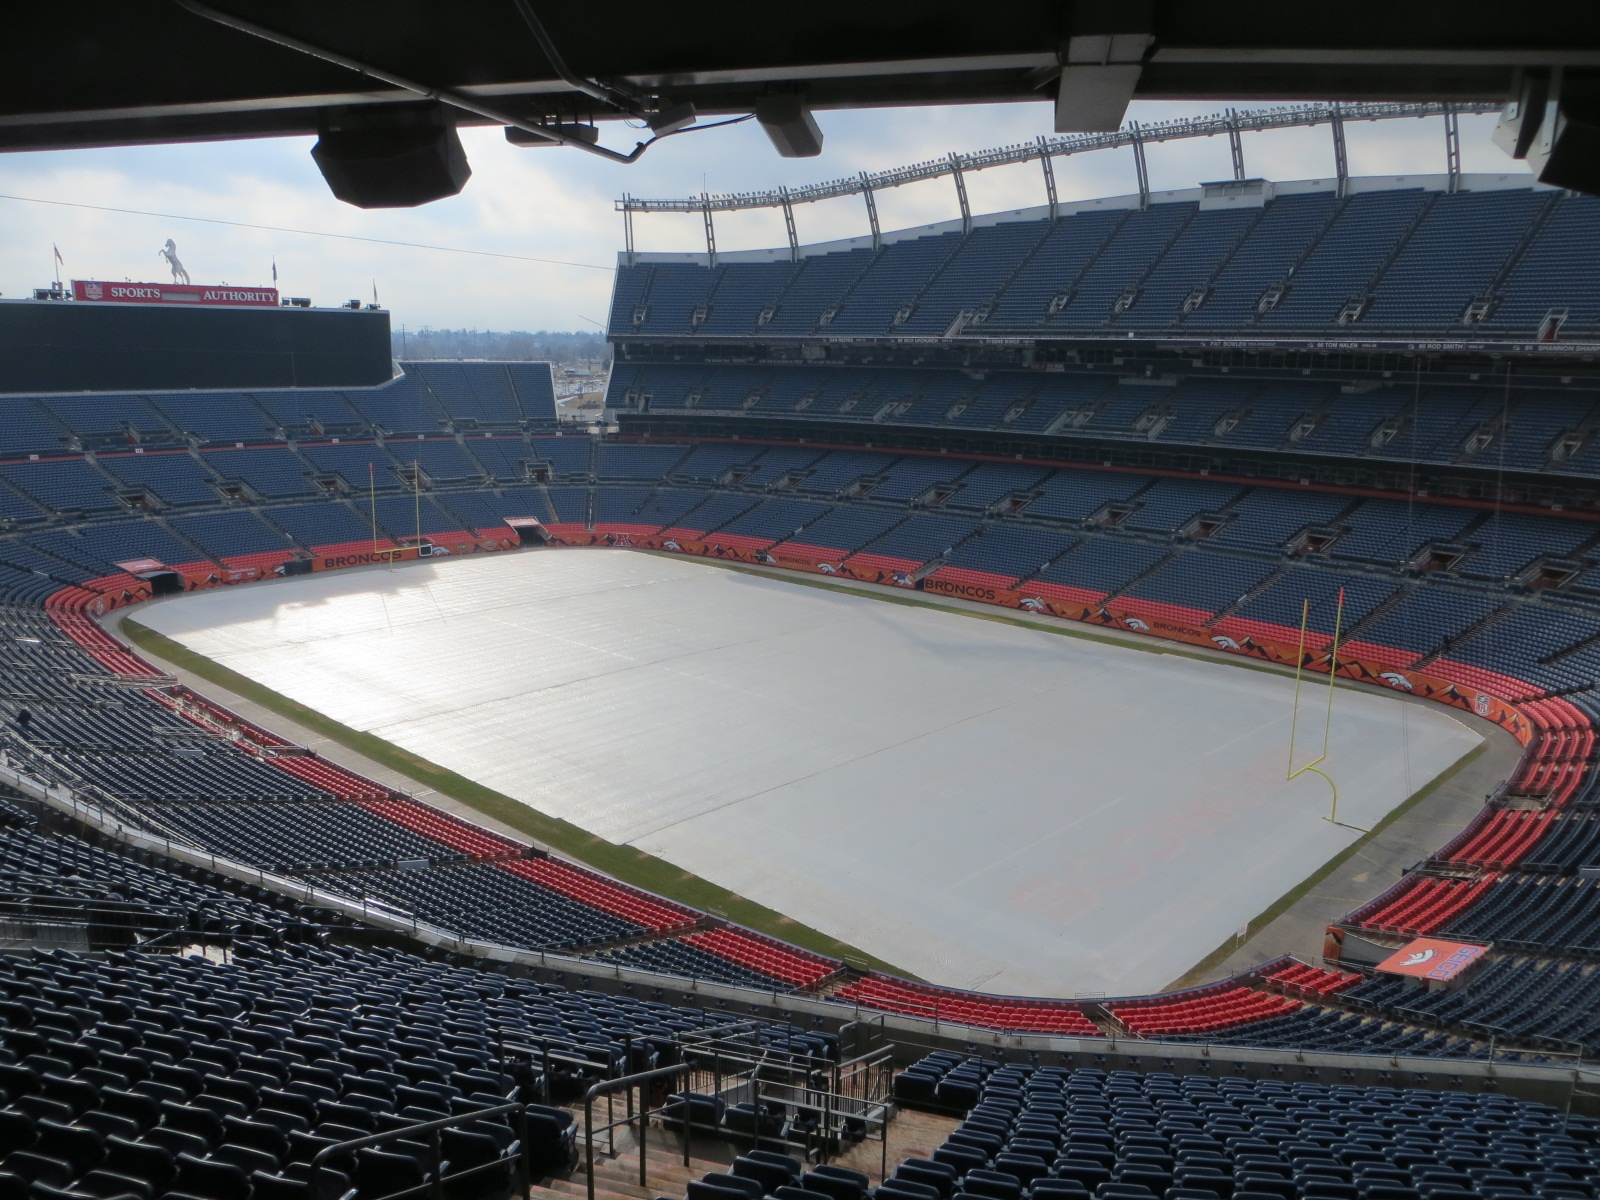 11 Secrets Of Sports Authority Field At Mile High Stadium